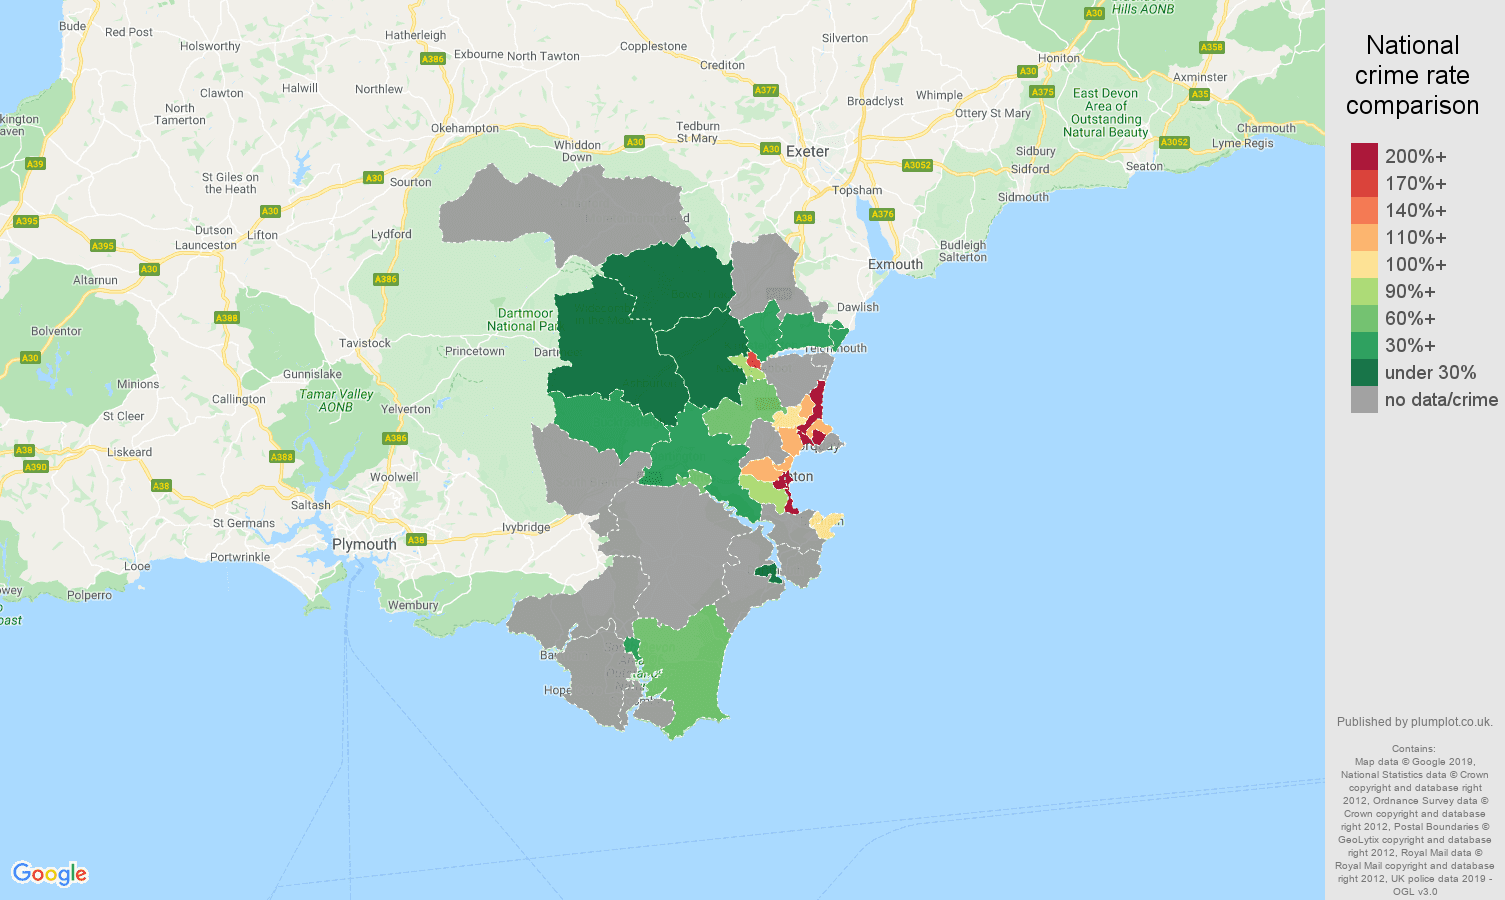 Torquay possession of weapons crime rate comparison map